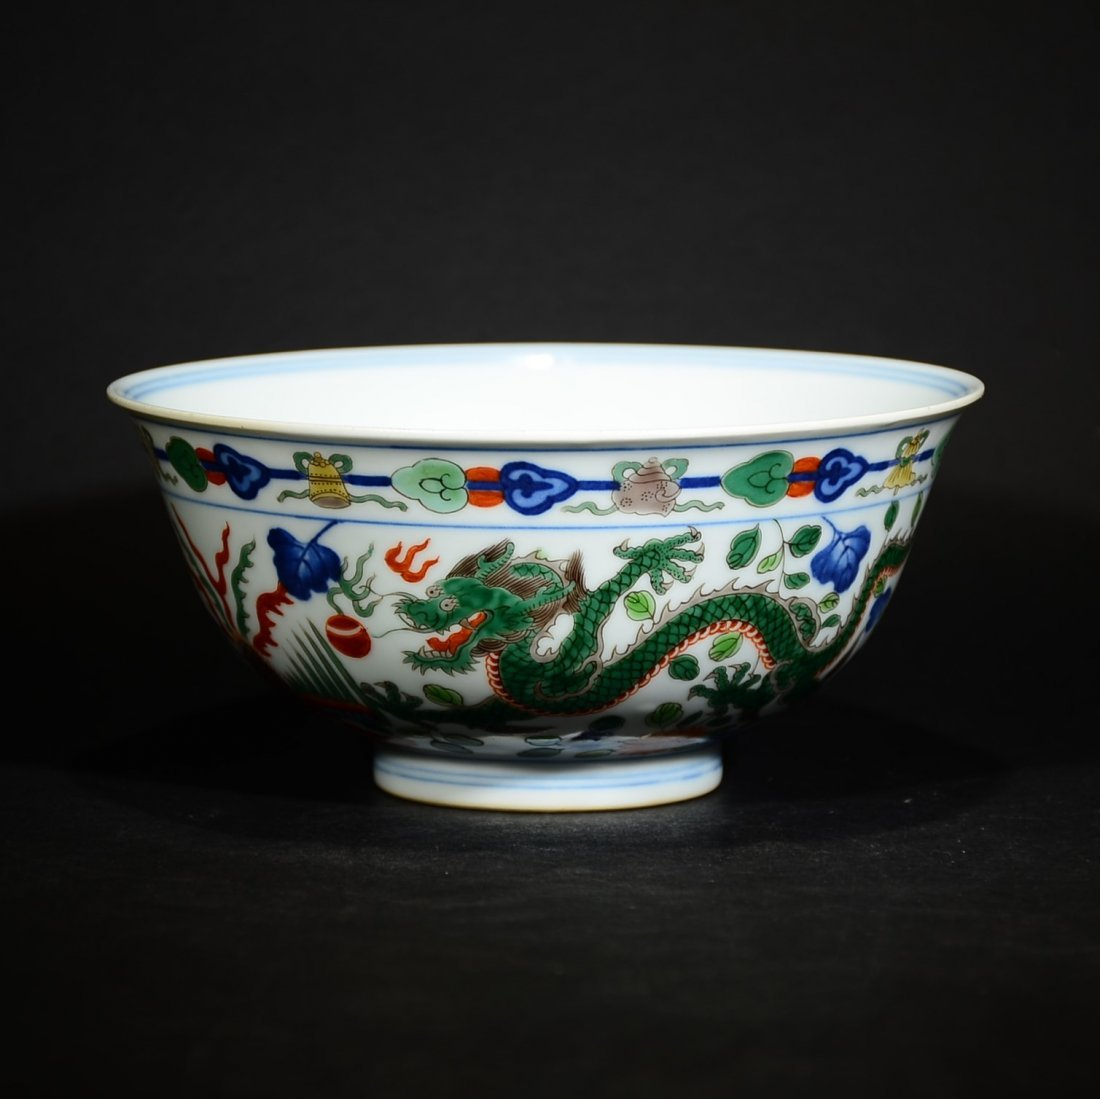 QING D., A WUCAI BOWL WITH DRAGON AND PHOENIX PATTERN